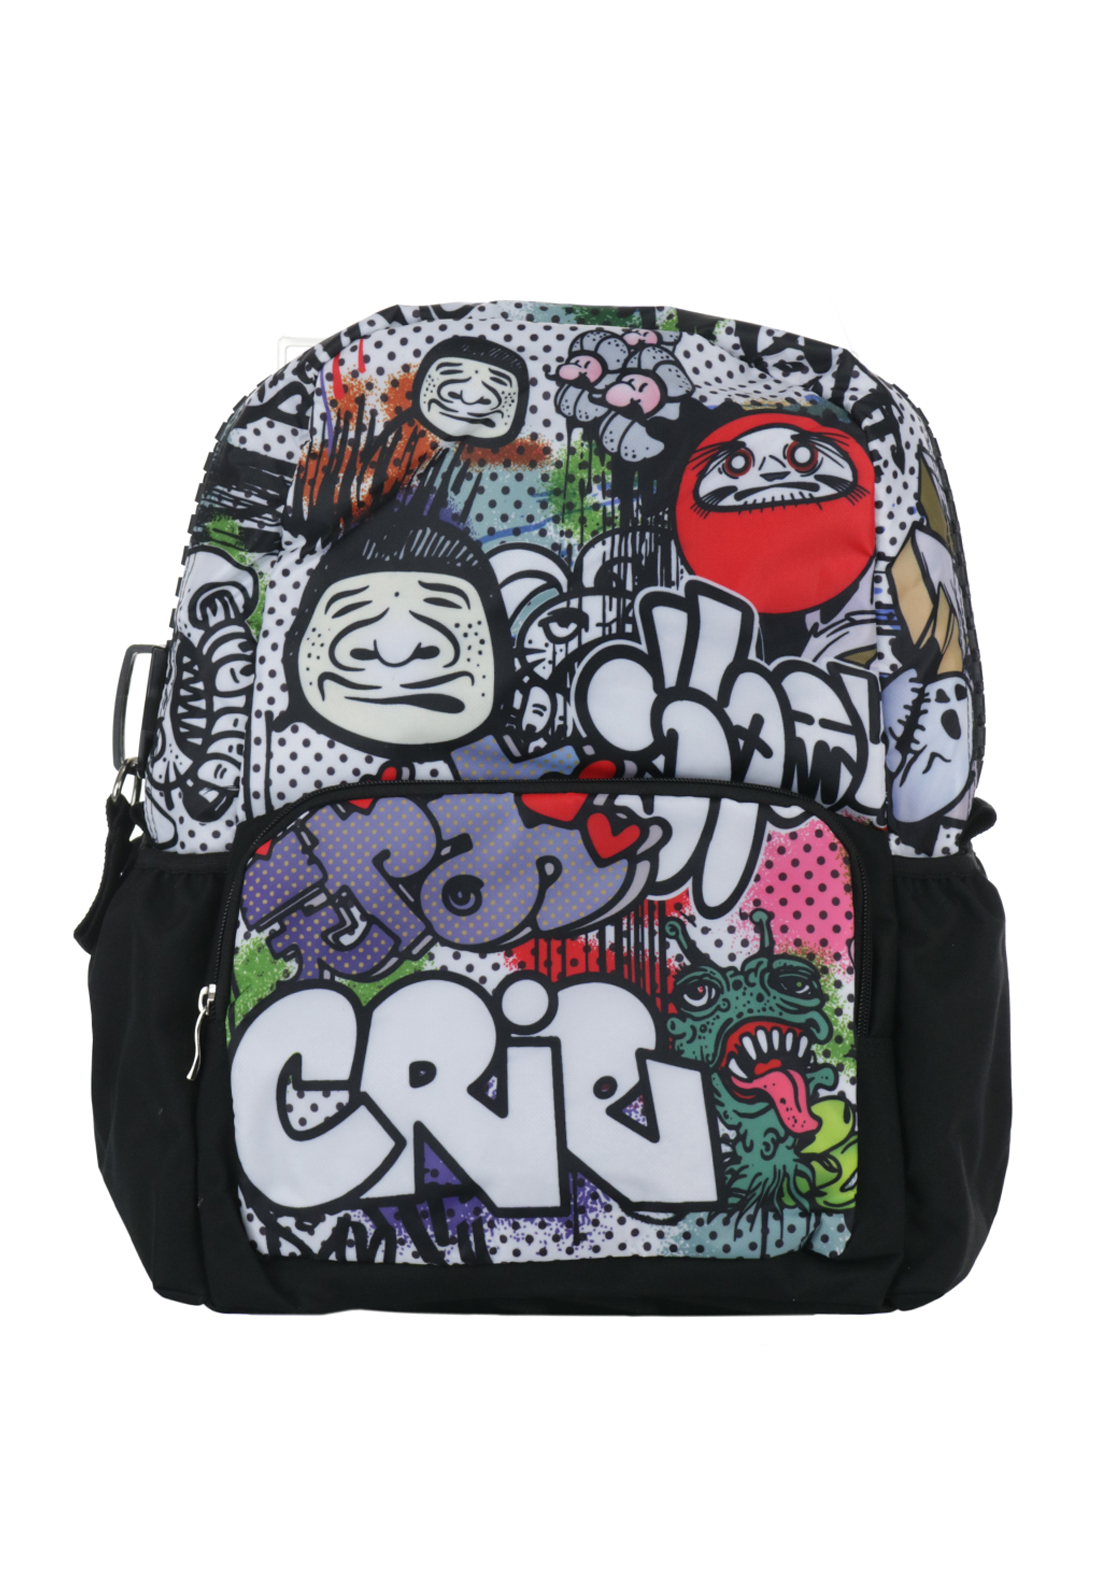 Ridge 53 Graffiti Backpack Schoolbag, Black